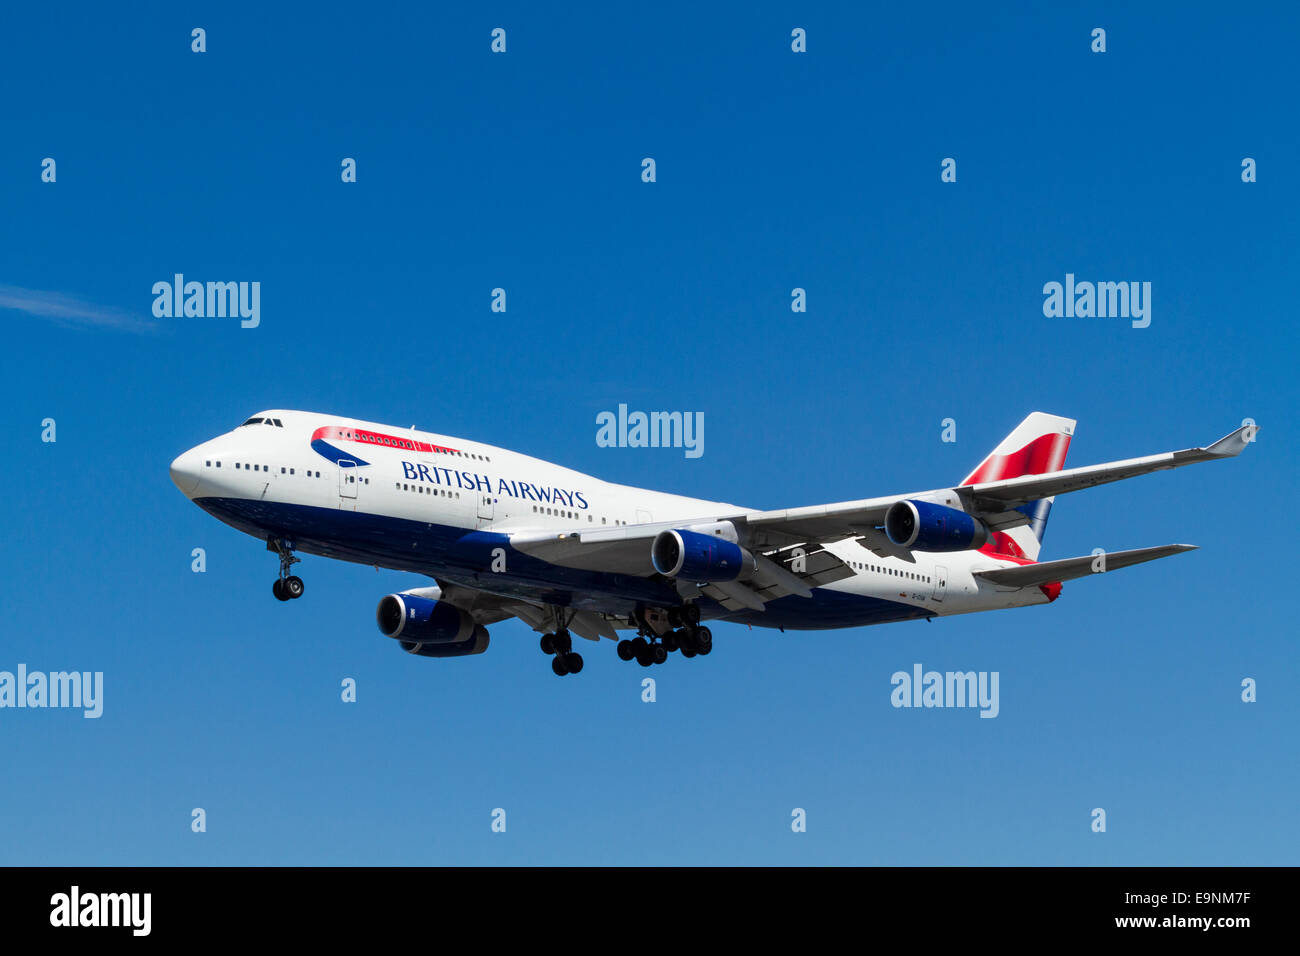 Boeing jumbo jet. British Airways 747-400 on its approach for landing at London Heathrow, England, UK - Stock Image